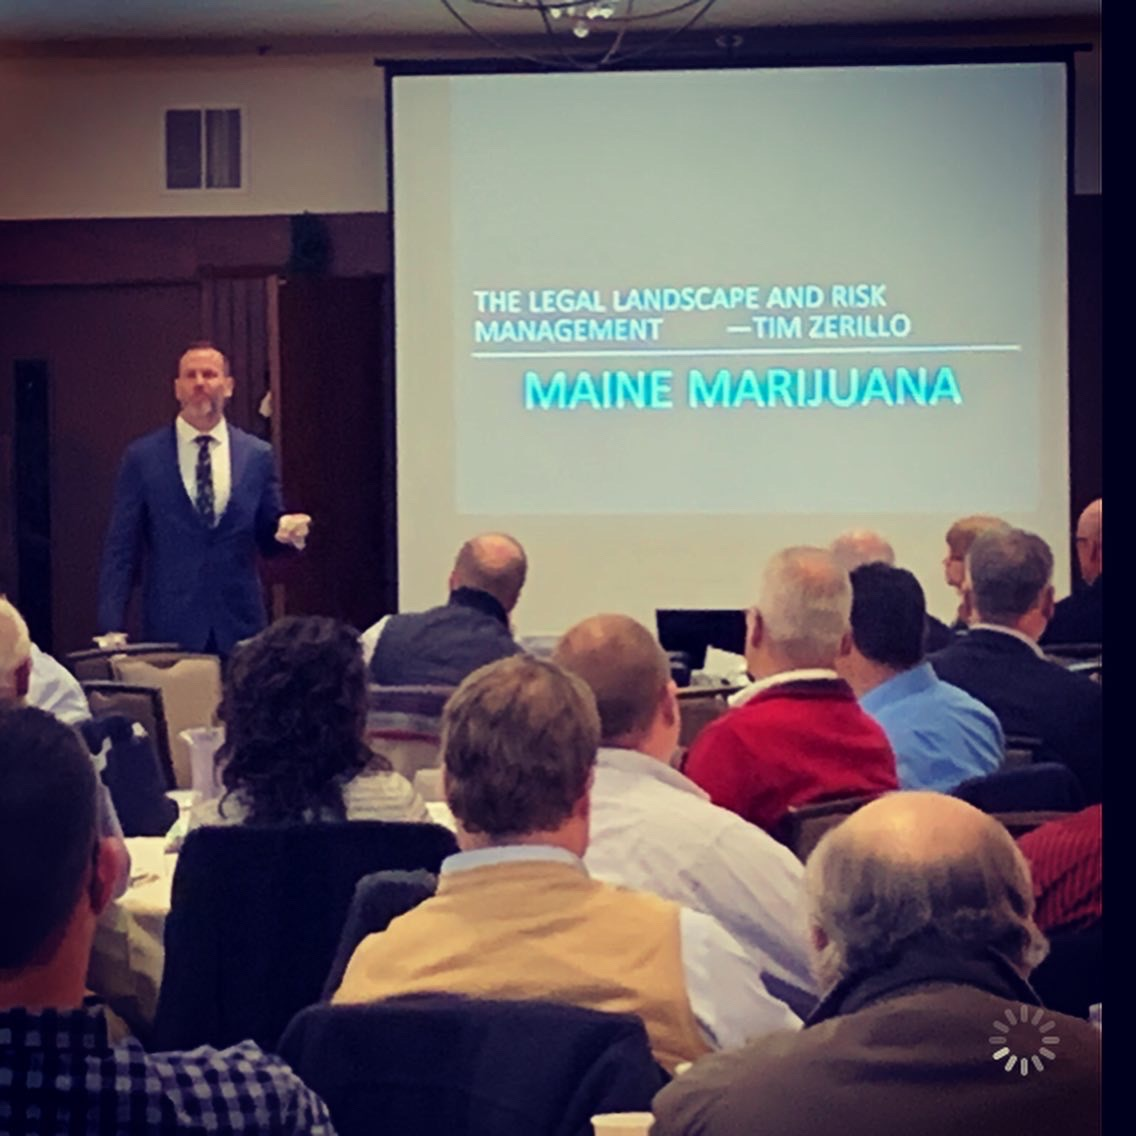 Tim Zerillo Speaking in Portland, Maine on December 17, 2019